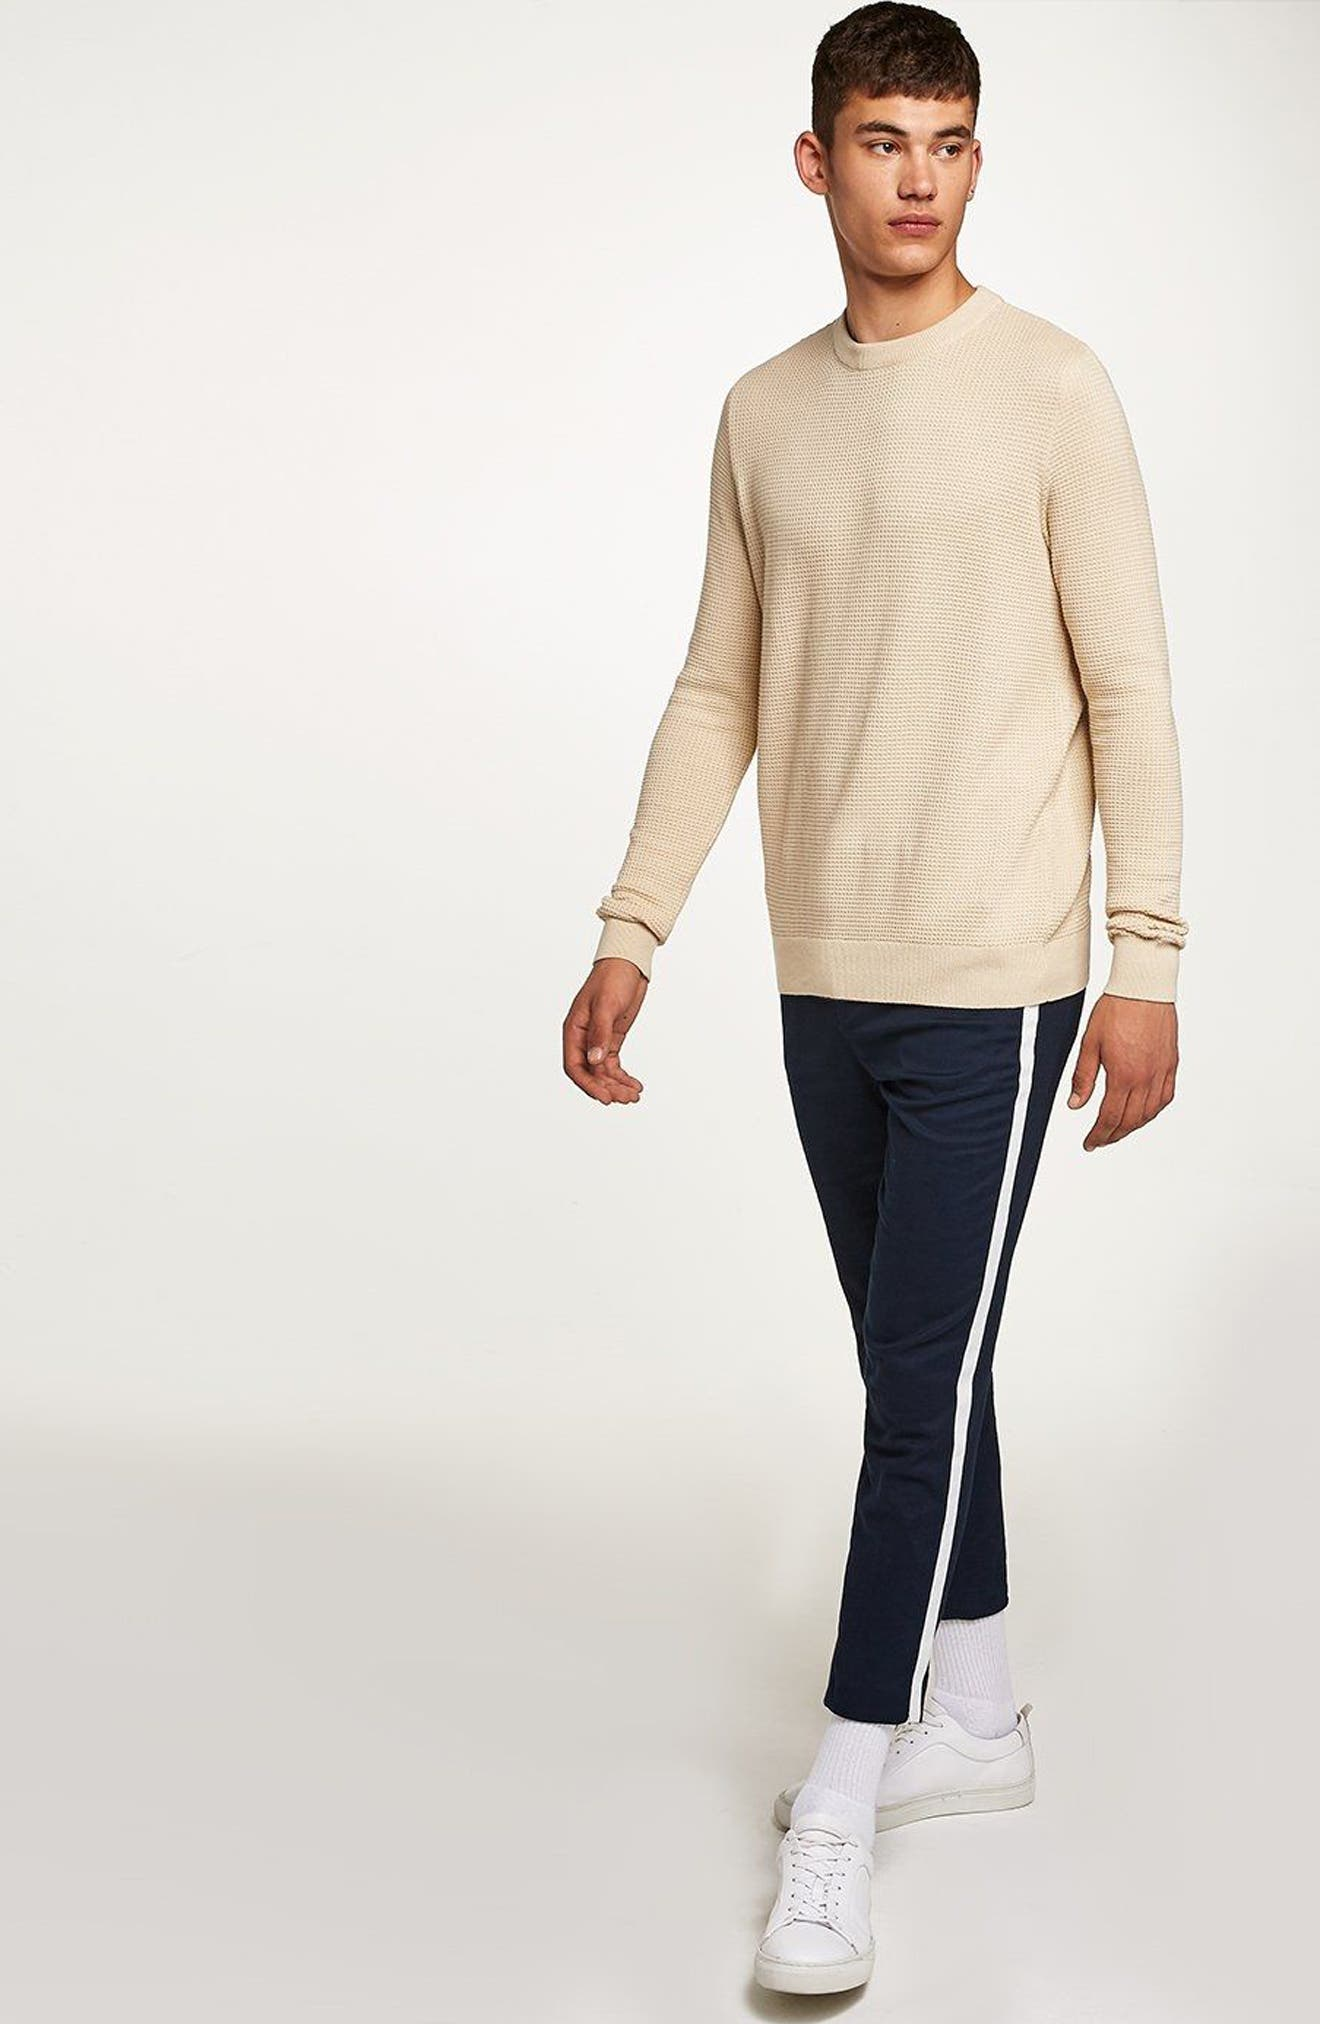 Thermal Knit Sweater,                             Alternate thumbnail 5, color,                             250